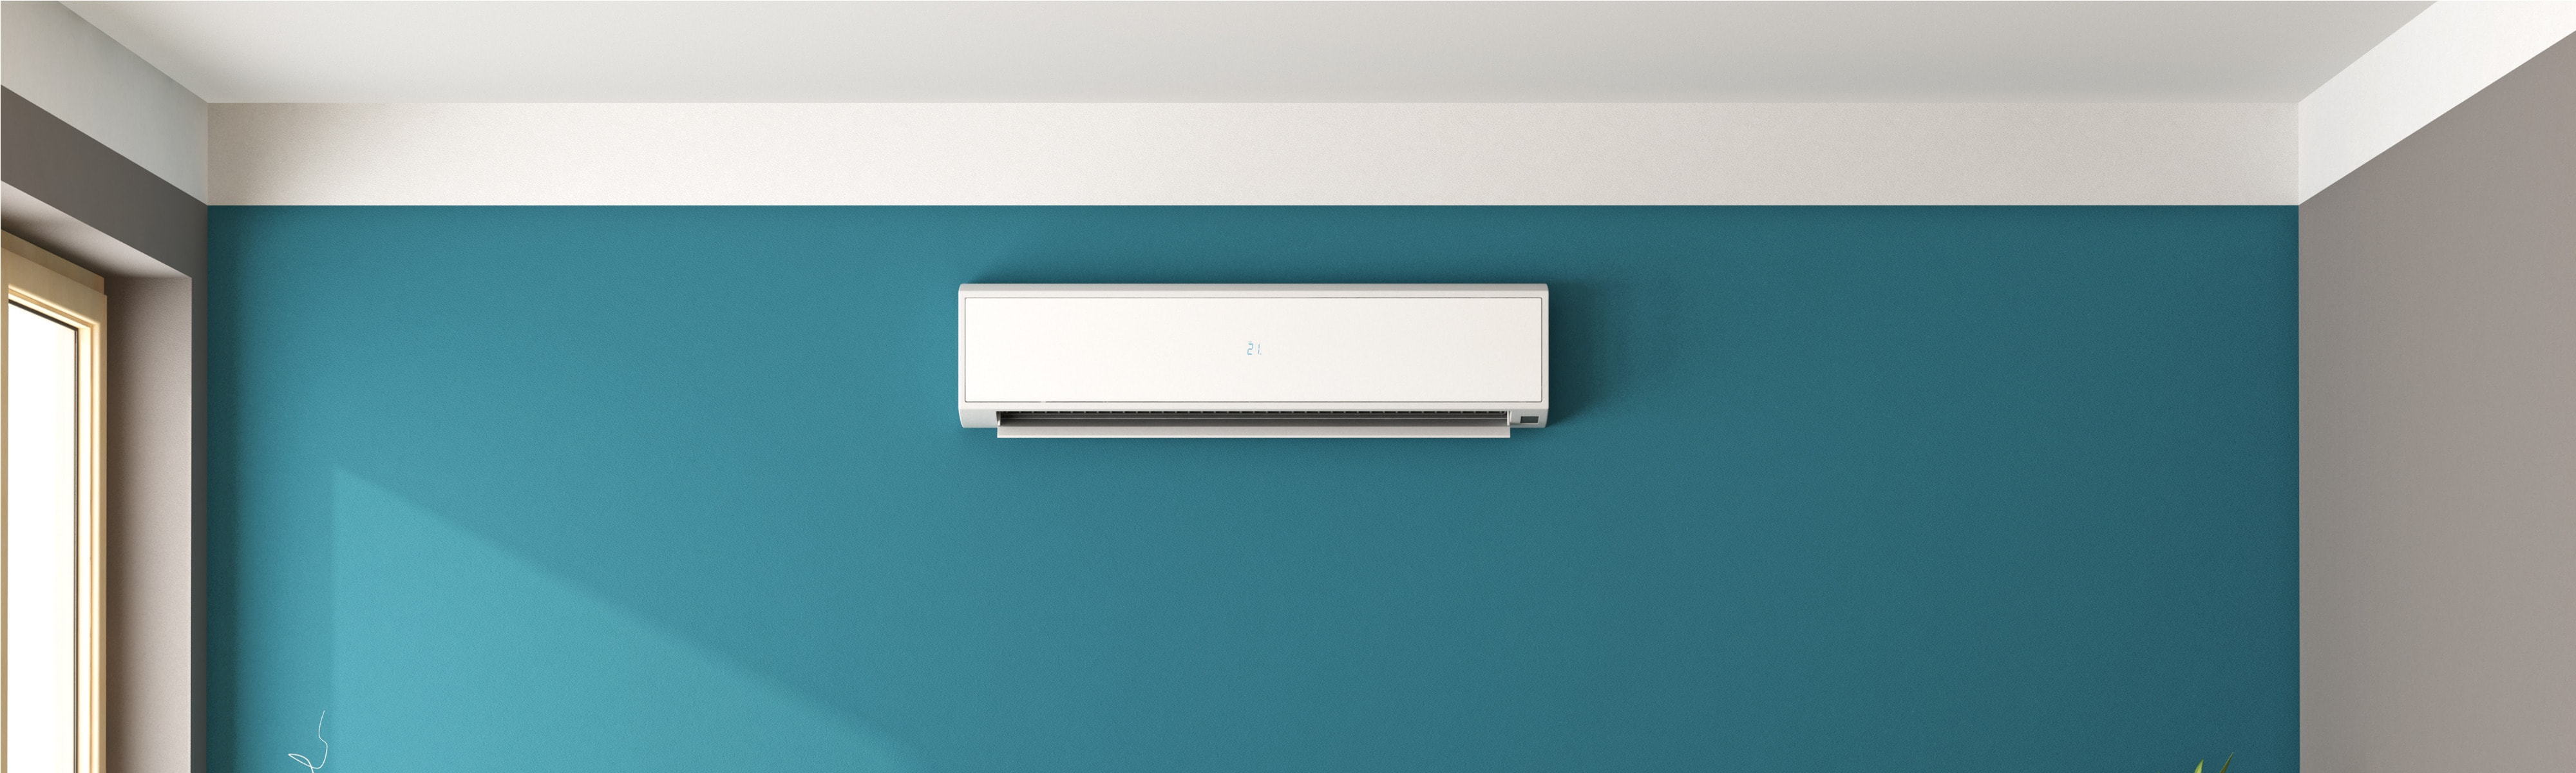 A ductless HVAC unit mounted on the wall.